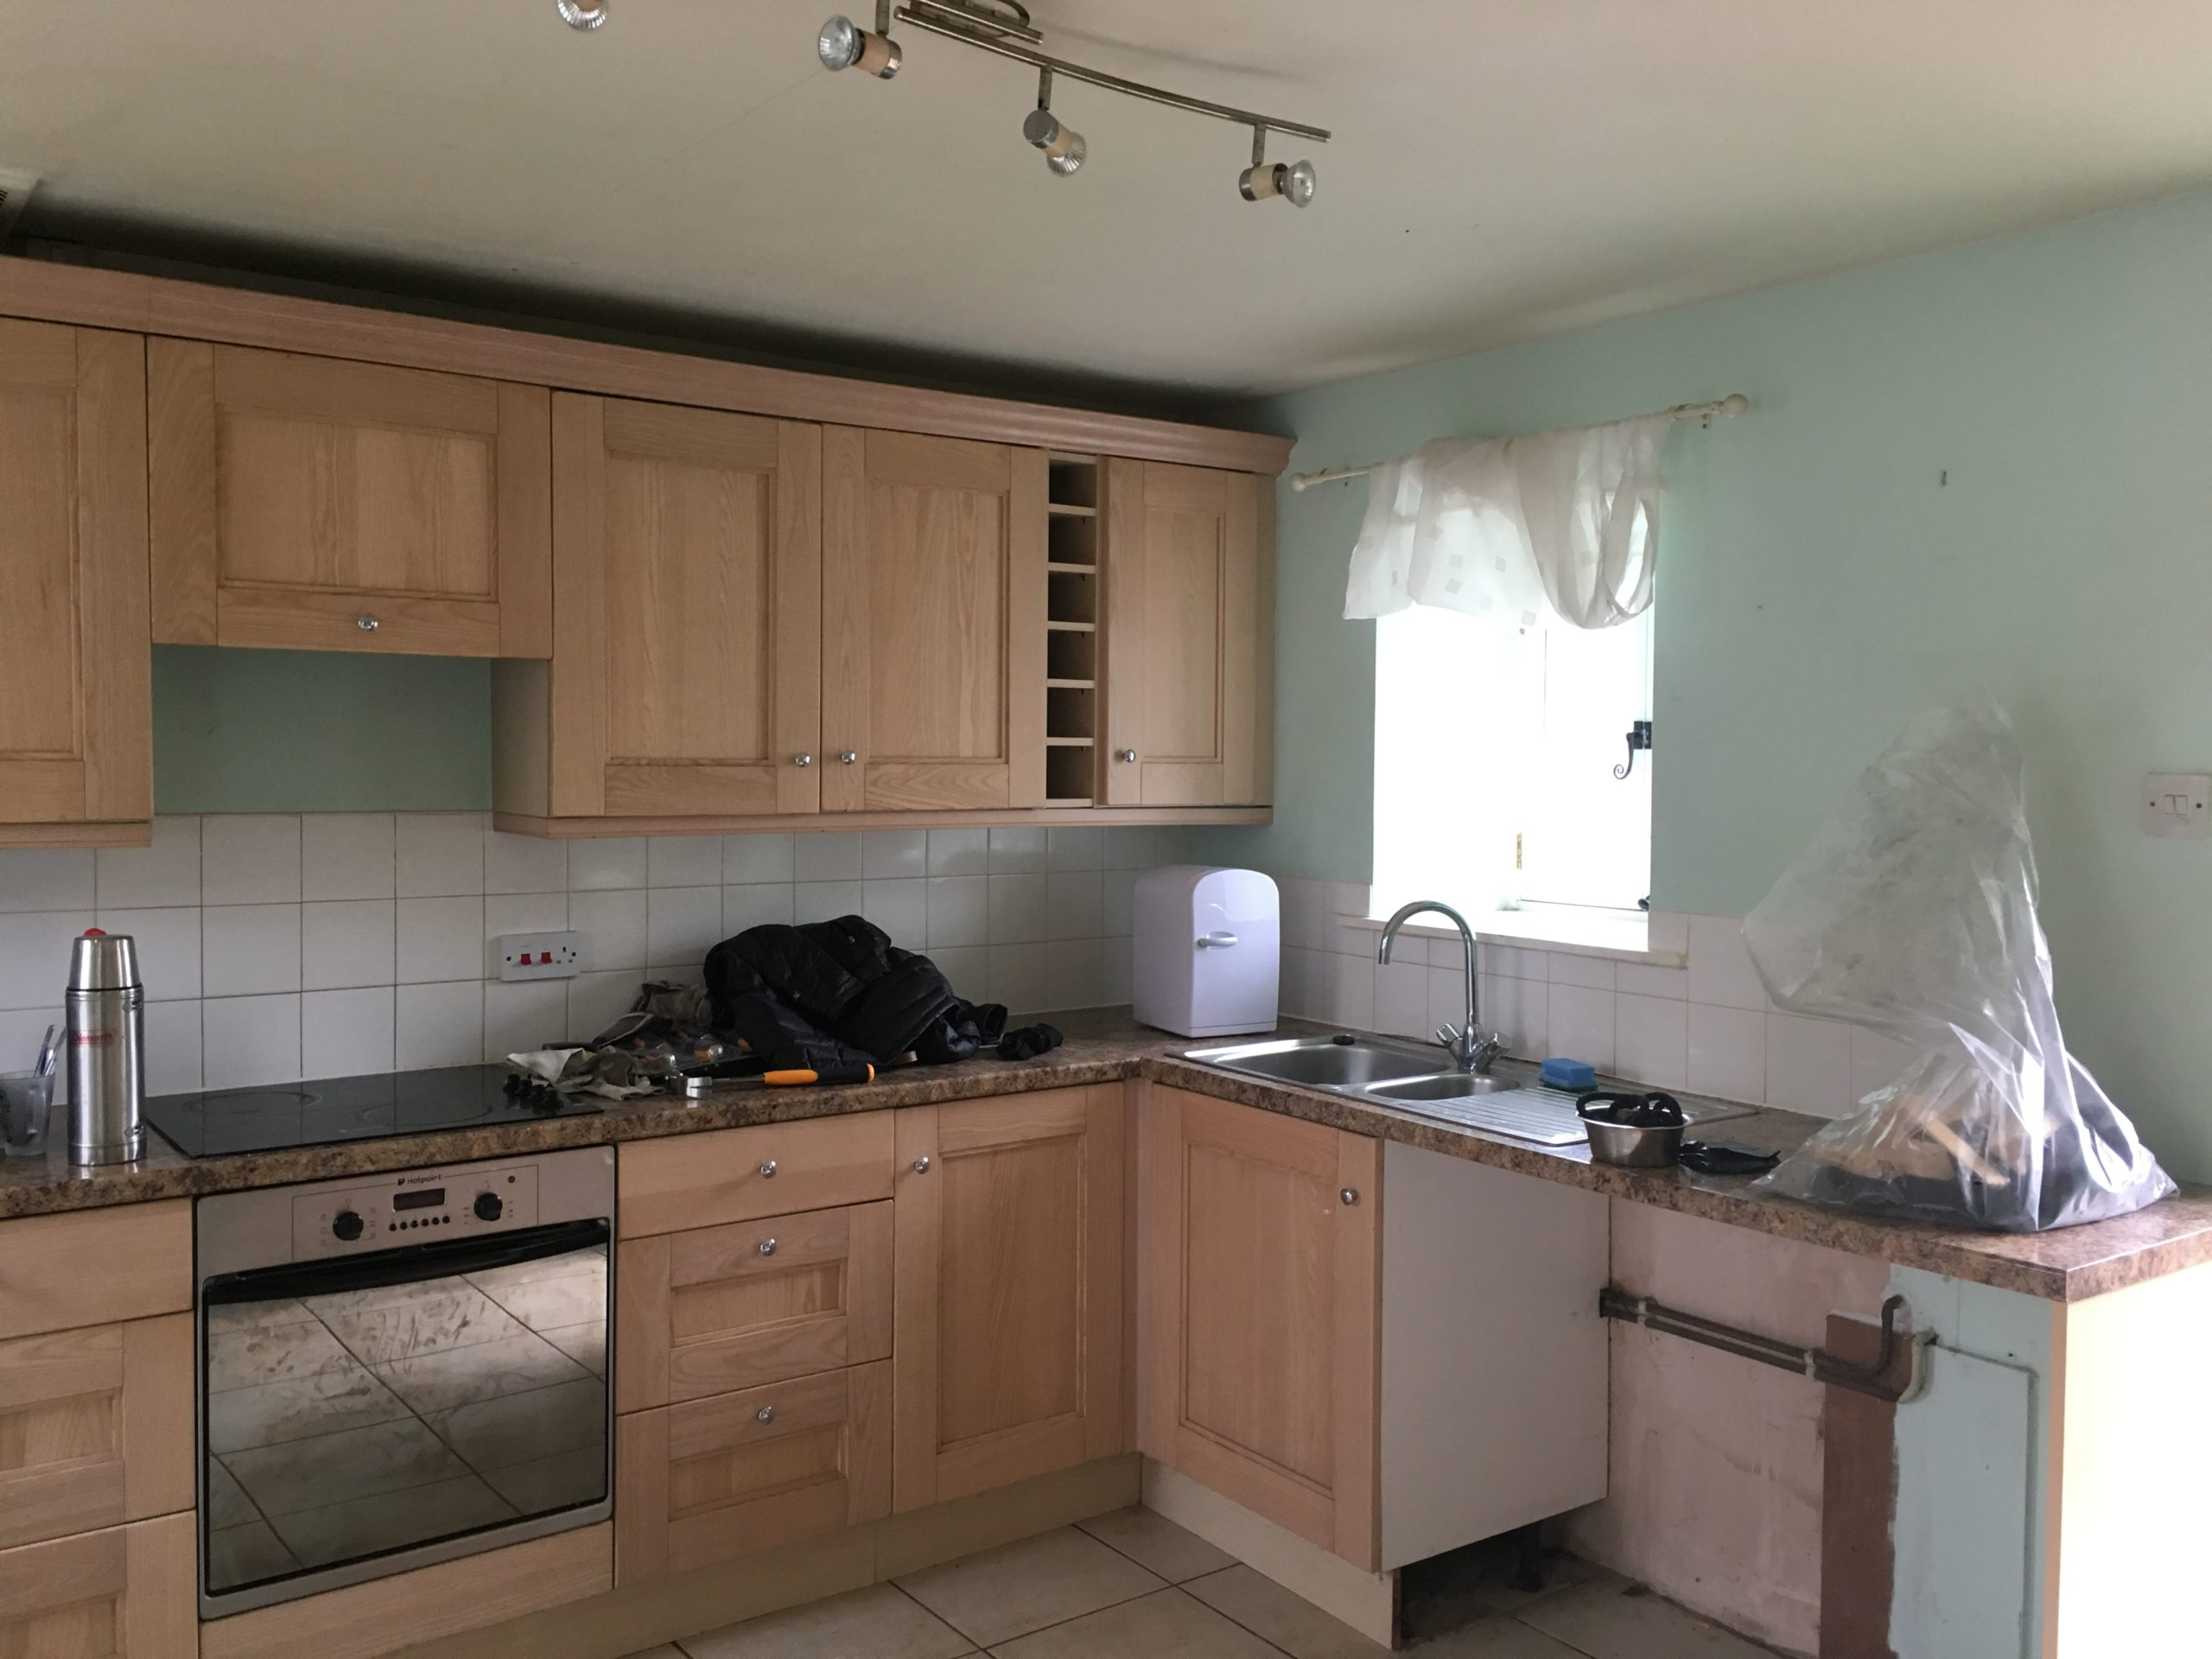 Interiors before and afters